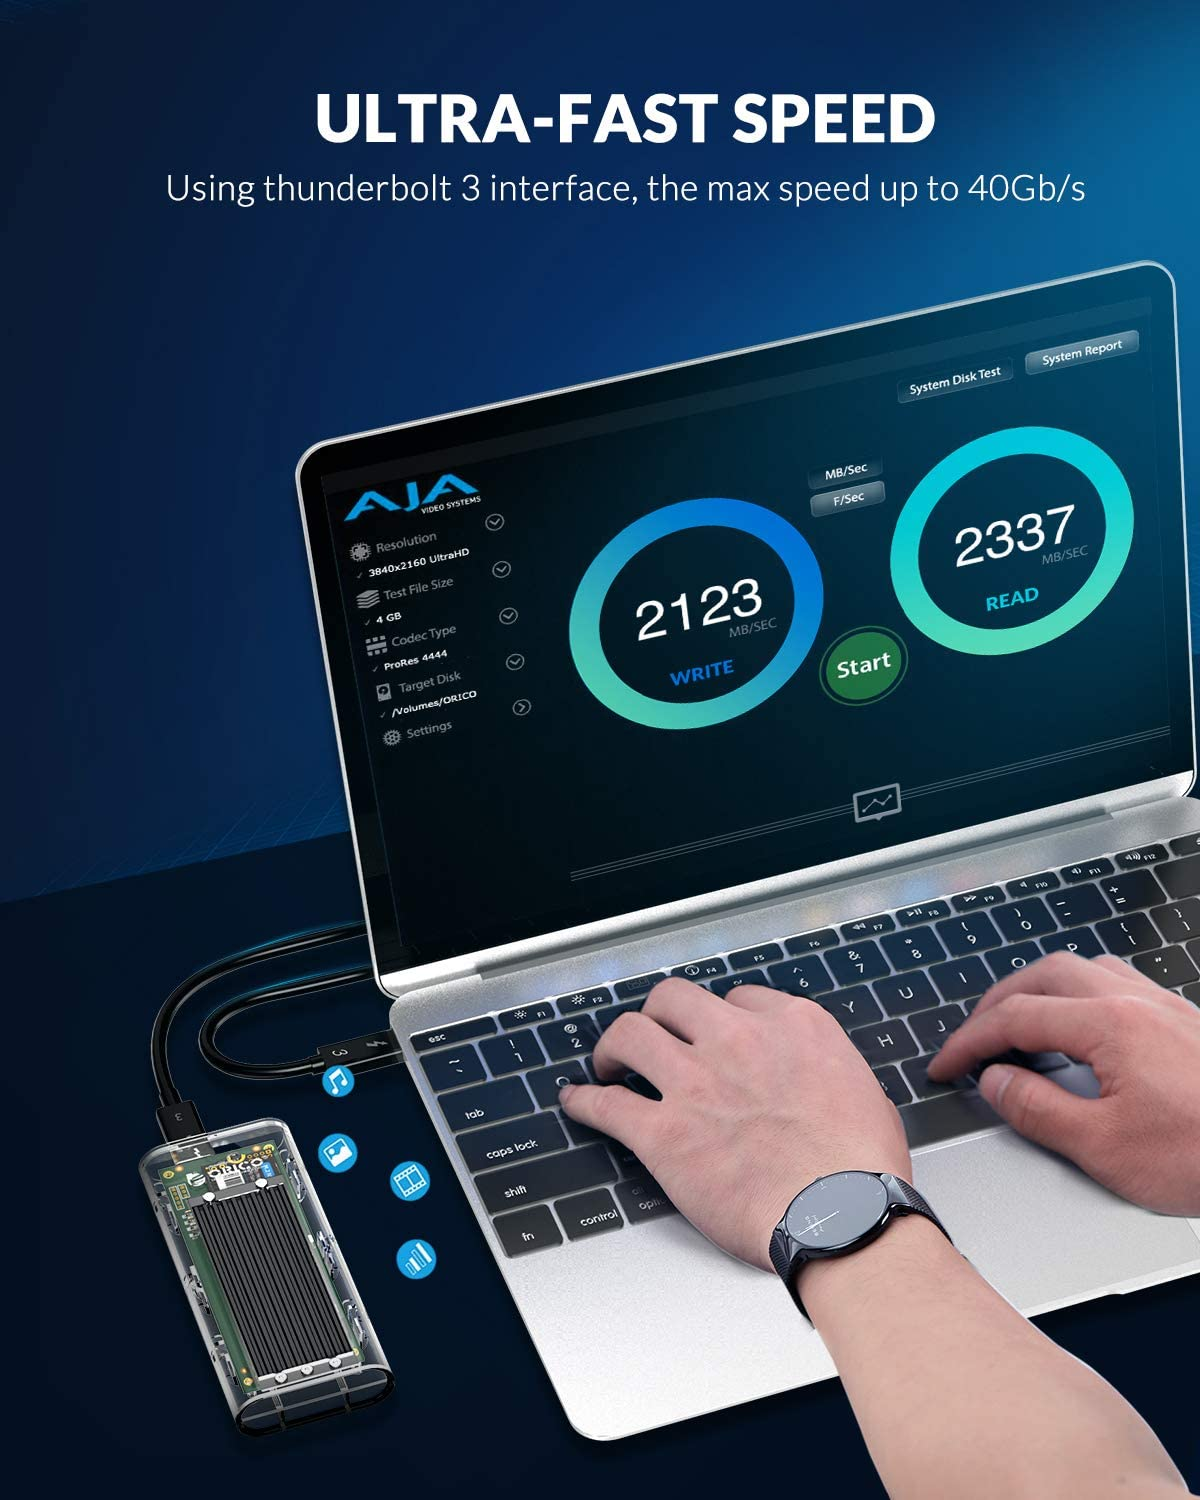 Only for 2280 M.2 NVME SSD Up to 2TB 0 GB ORICO Transparent Thunderbolt 3 NVMe 2280 M.2 SSD Enclosure Intel Official Certification 40Gbps Ultra High Speed M.2 SSD Case Black